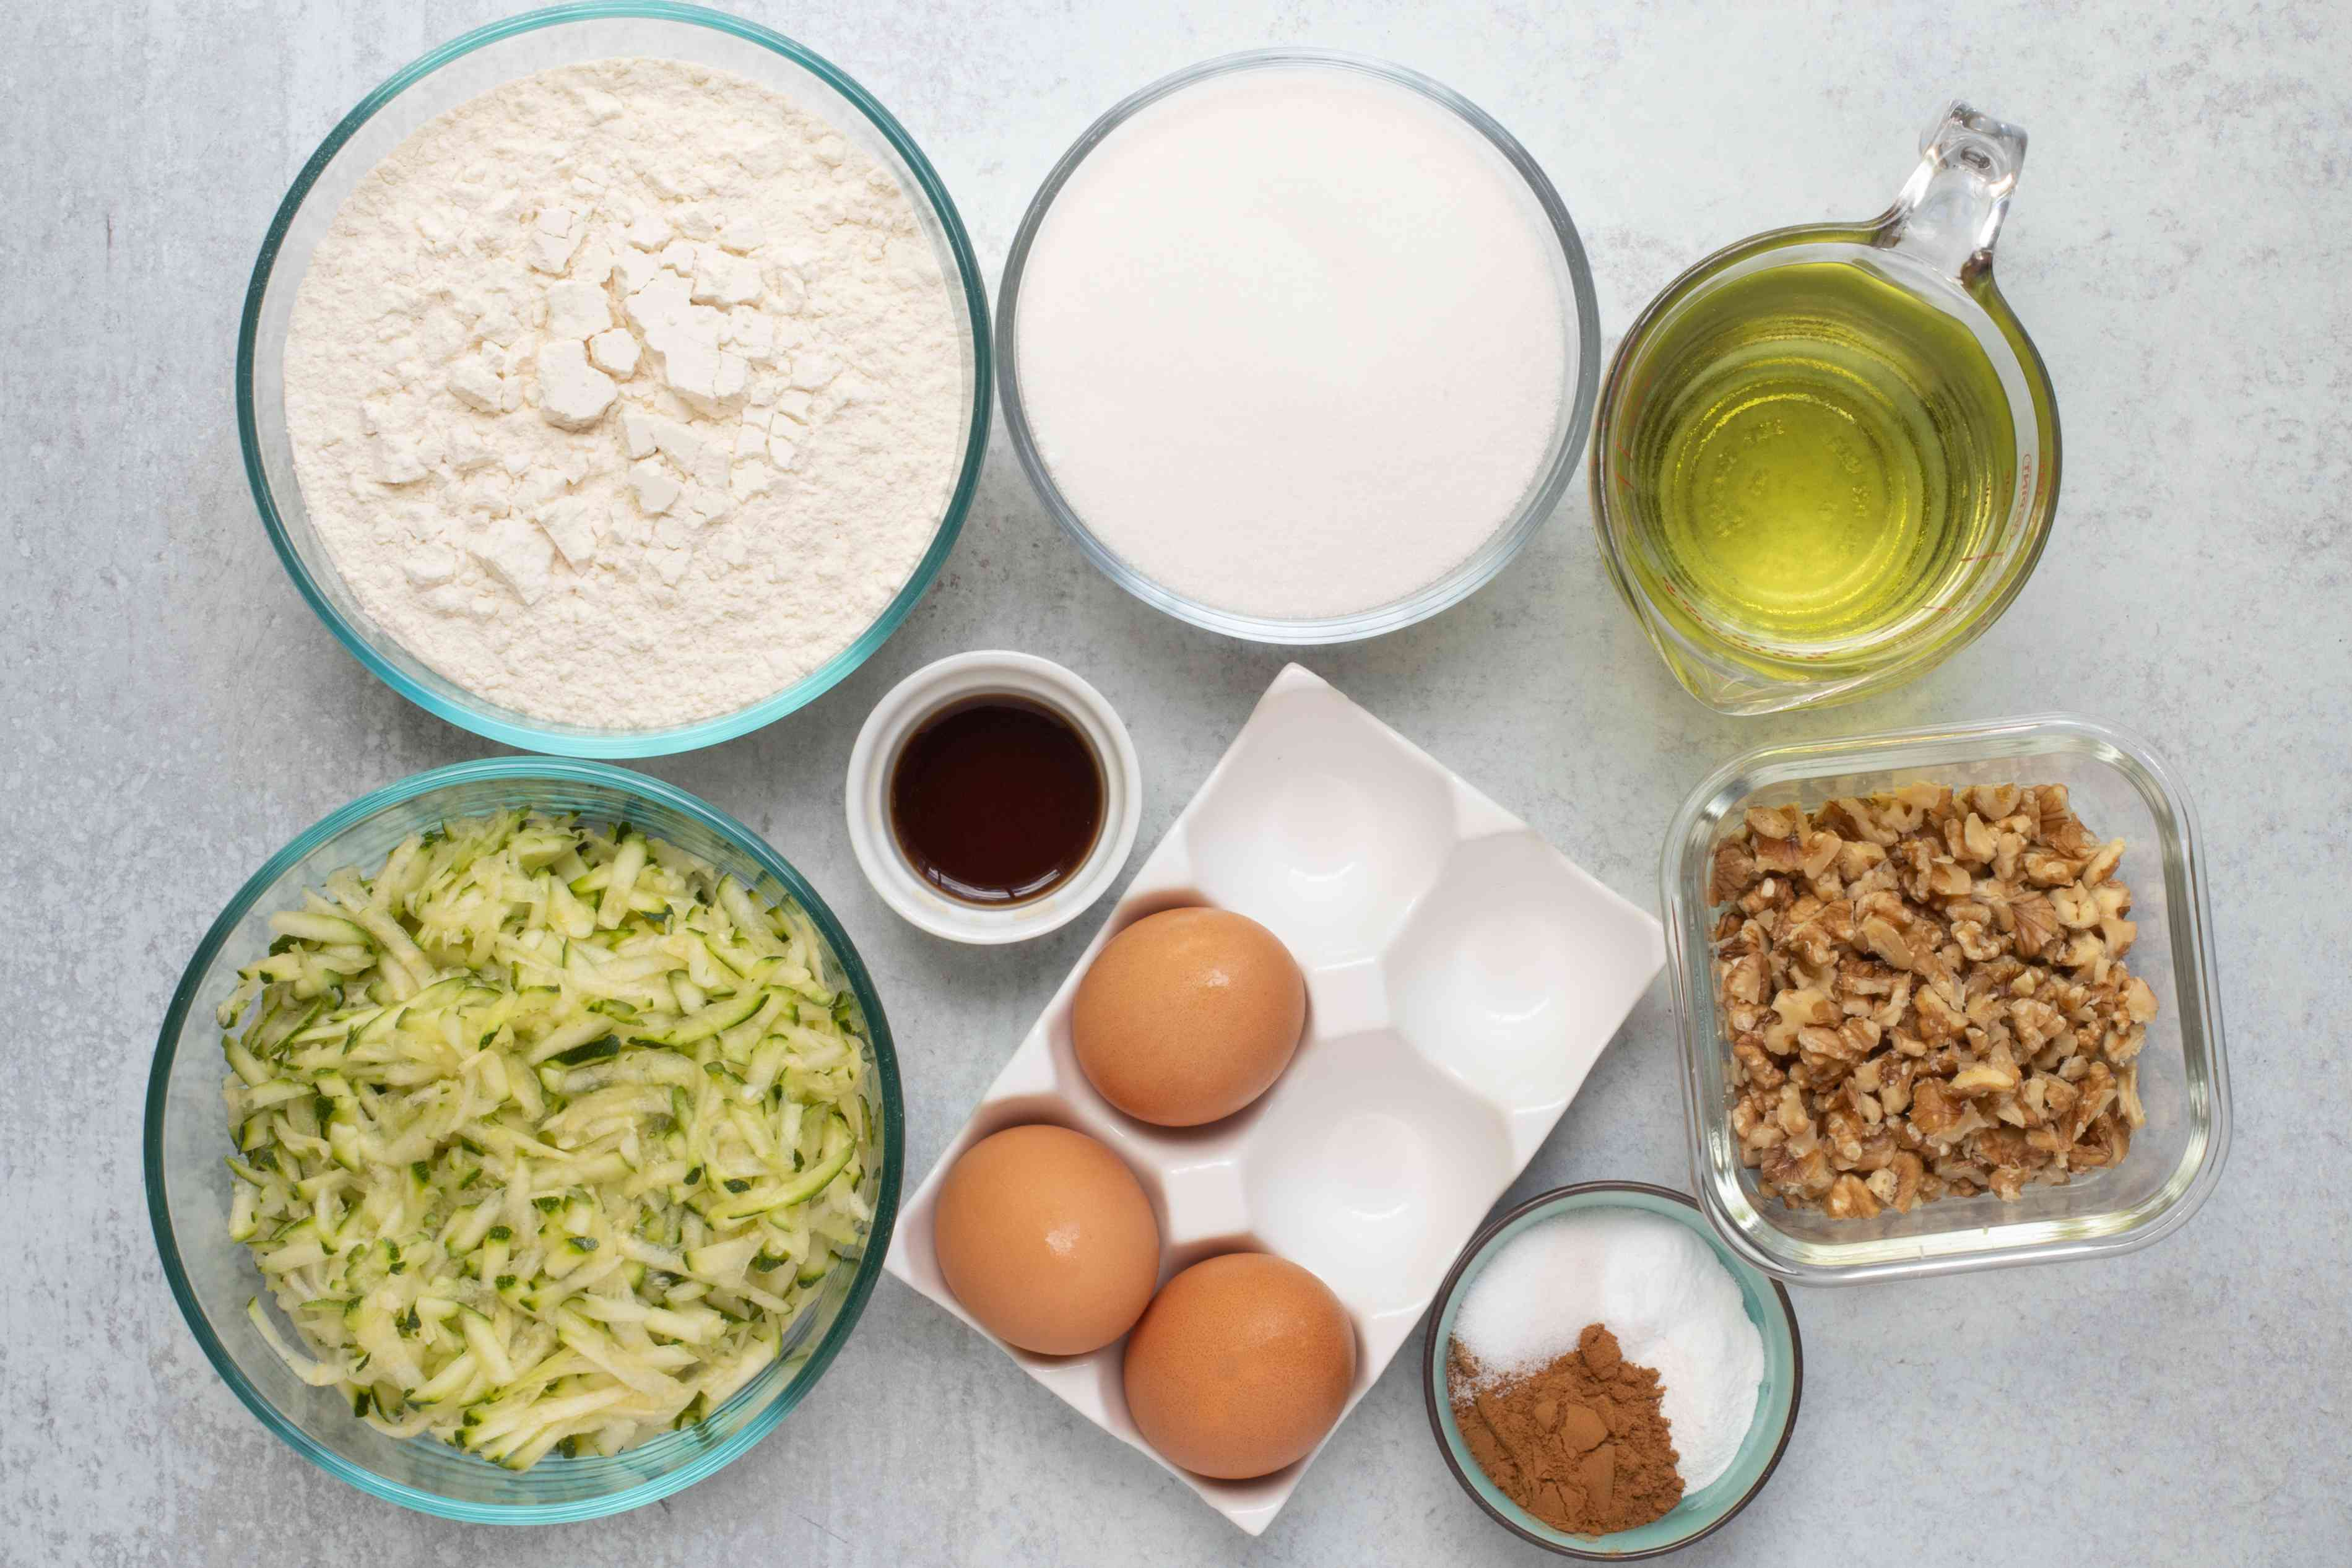 ingredients for classic zucchini bread